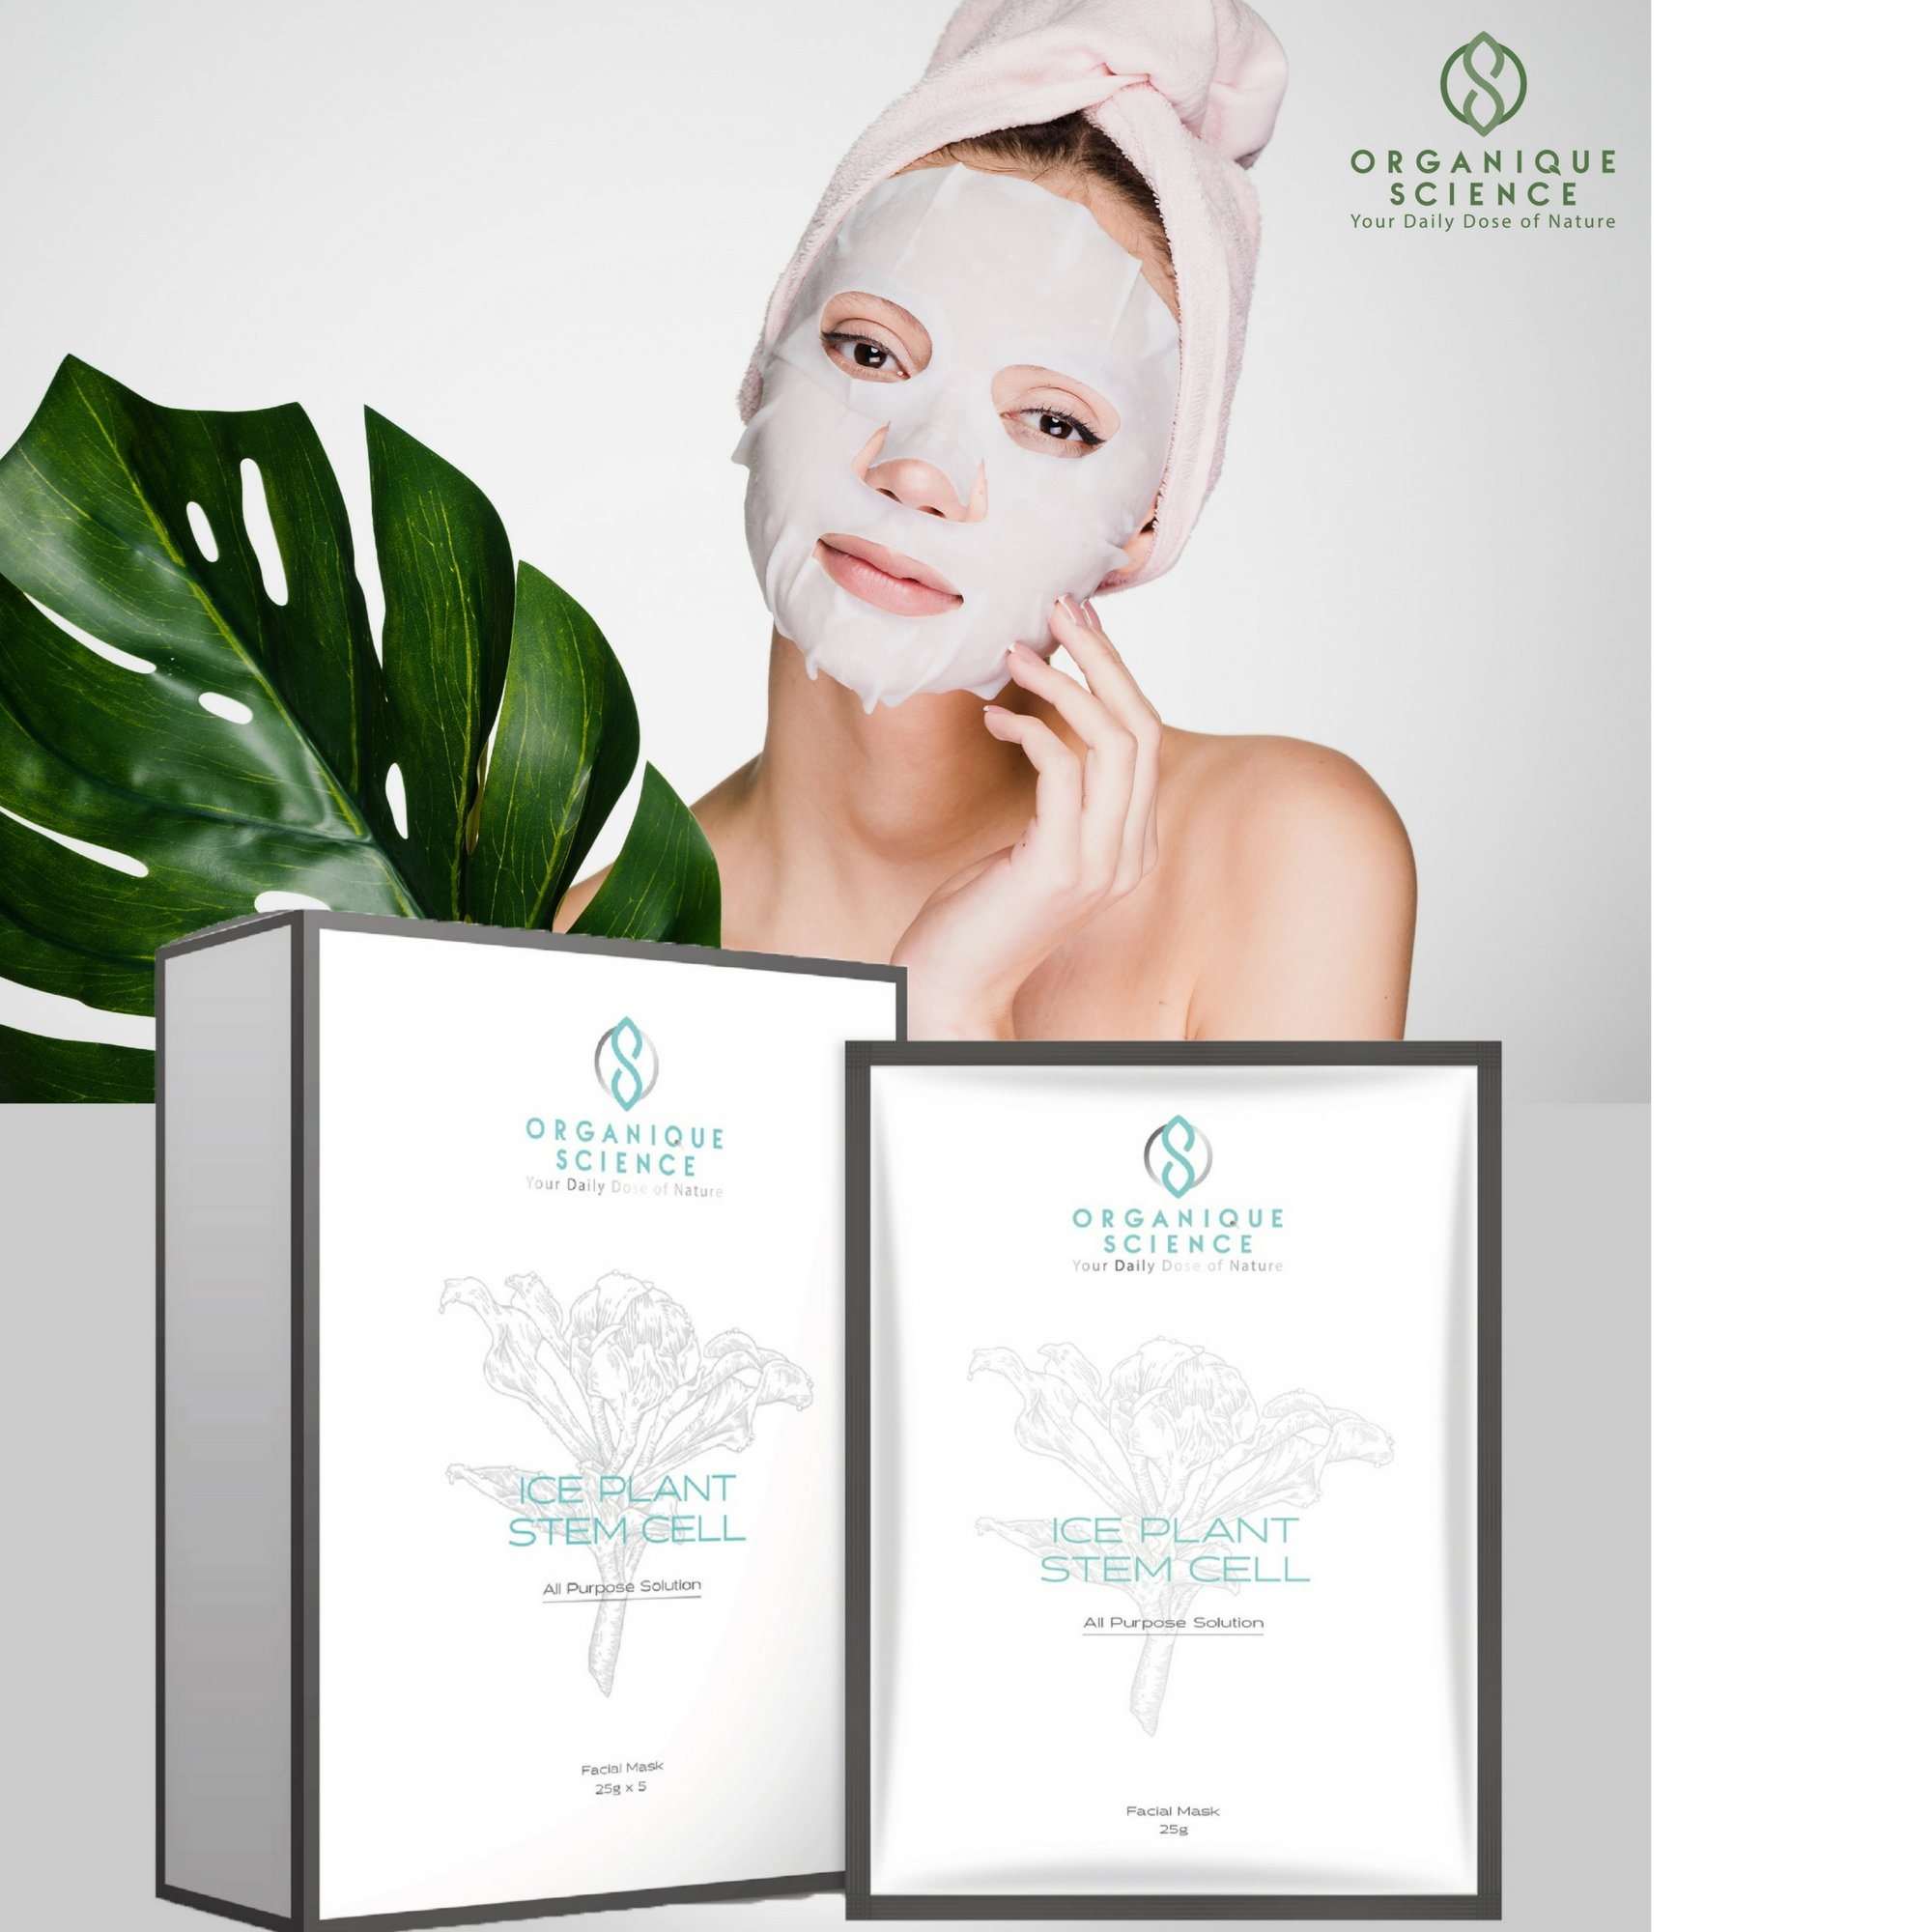 Ice Plant Stem Cell Facial Sheet Mask By Organique Skinlife Foam 130 Gr Science The Award Winning Anti Aging Face For Hydrating Moisturizing Dry Skin